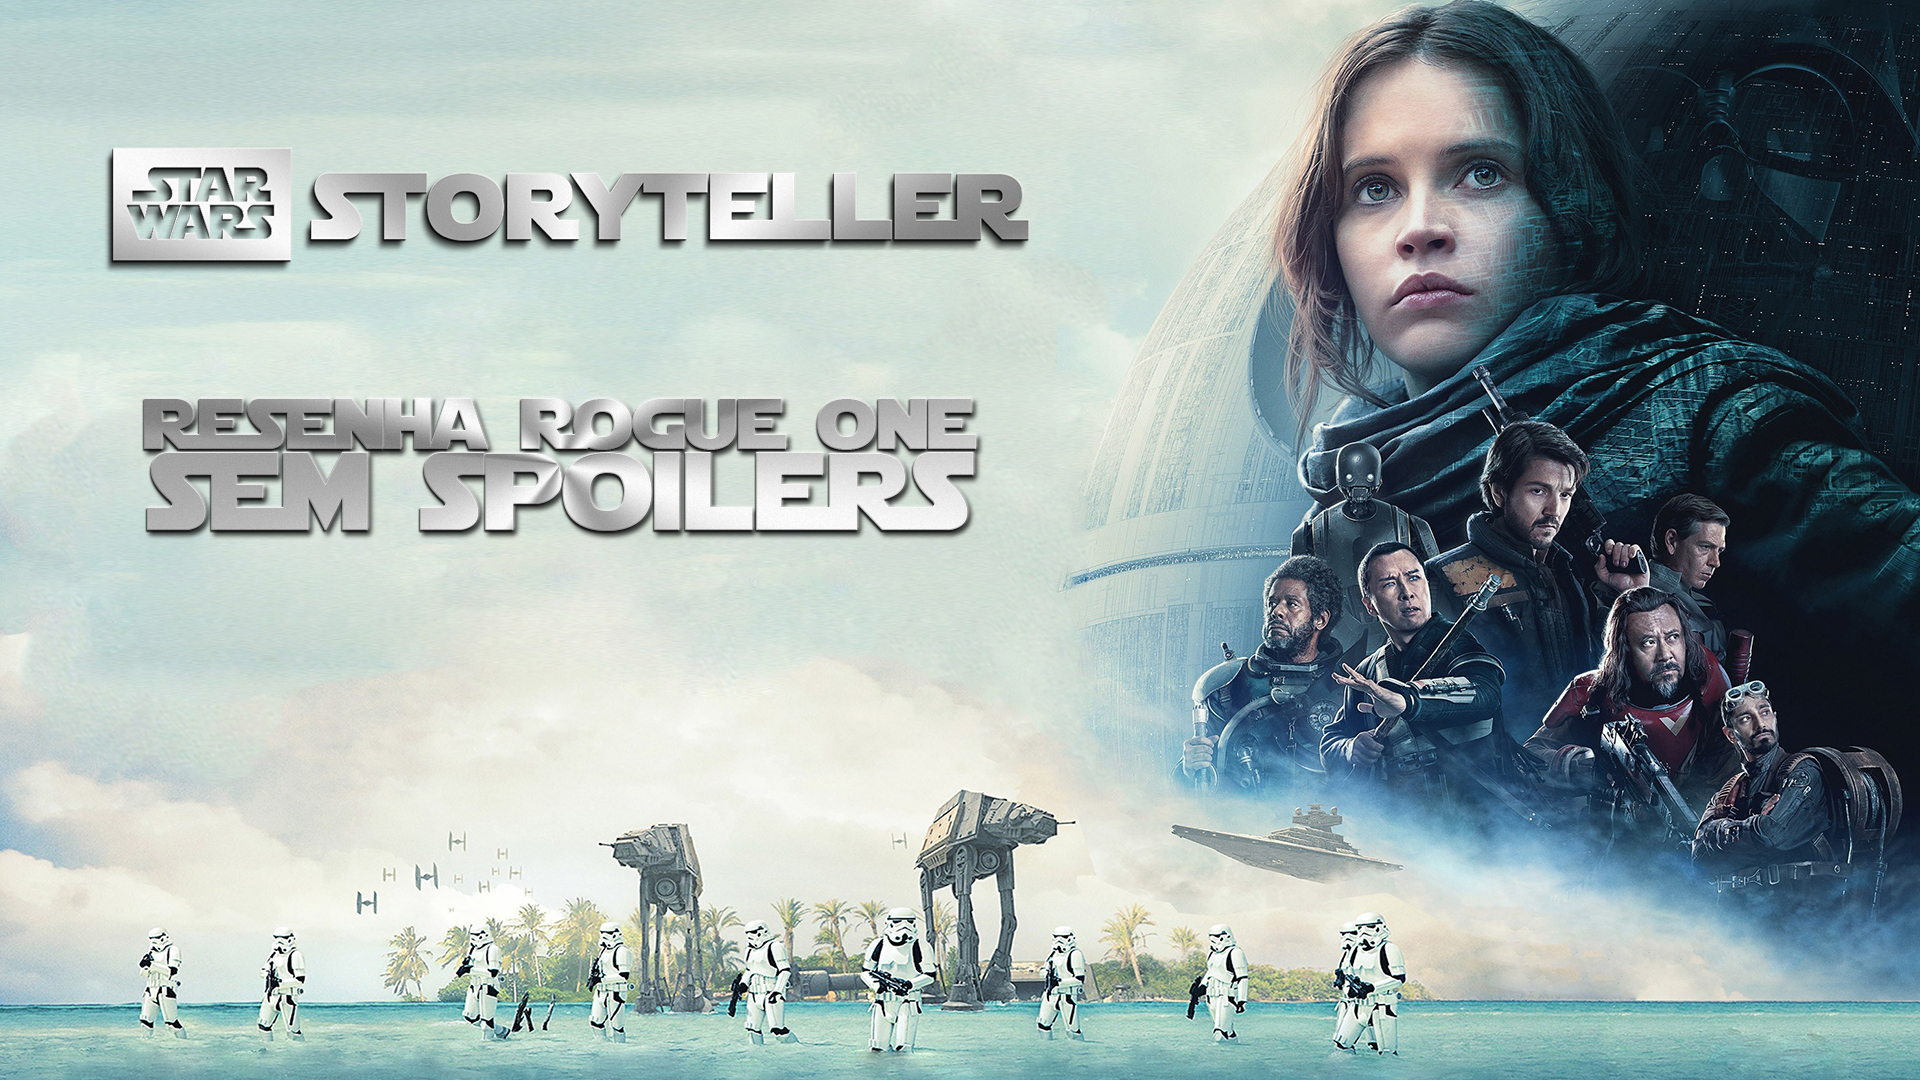 rogue-one-sem-spoilers-swst-offtopic-05a